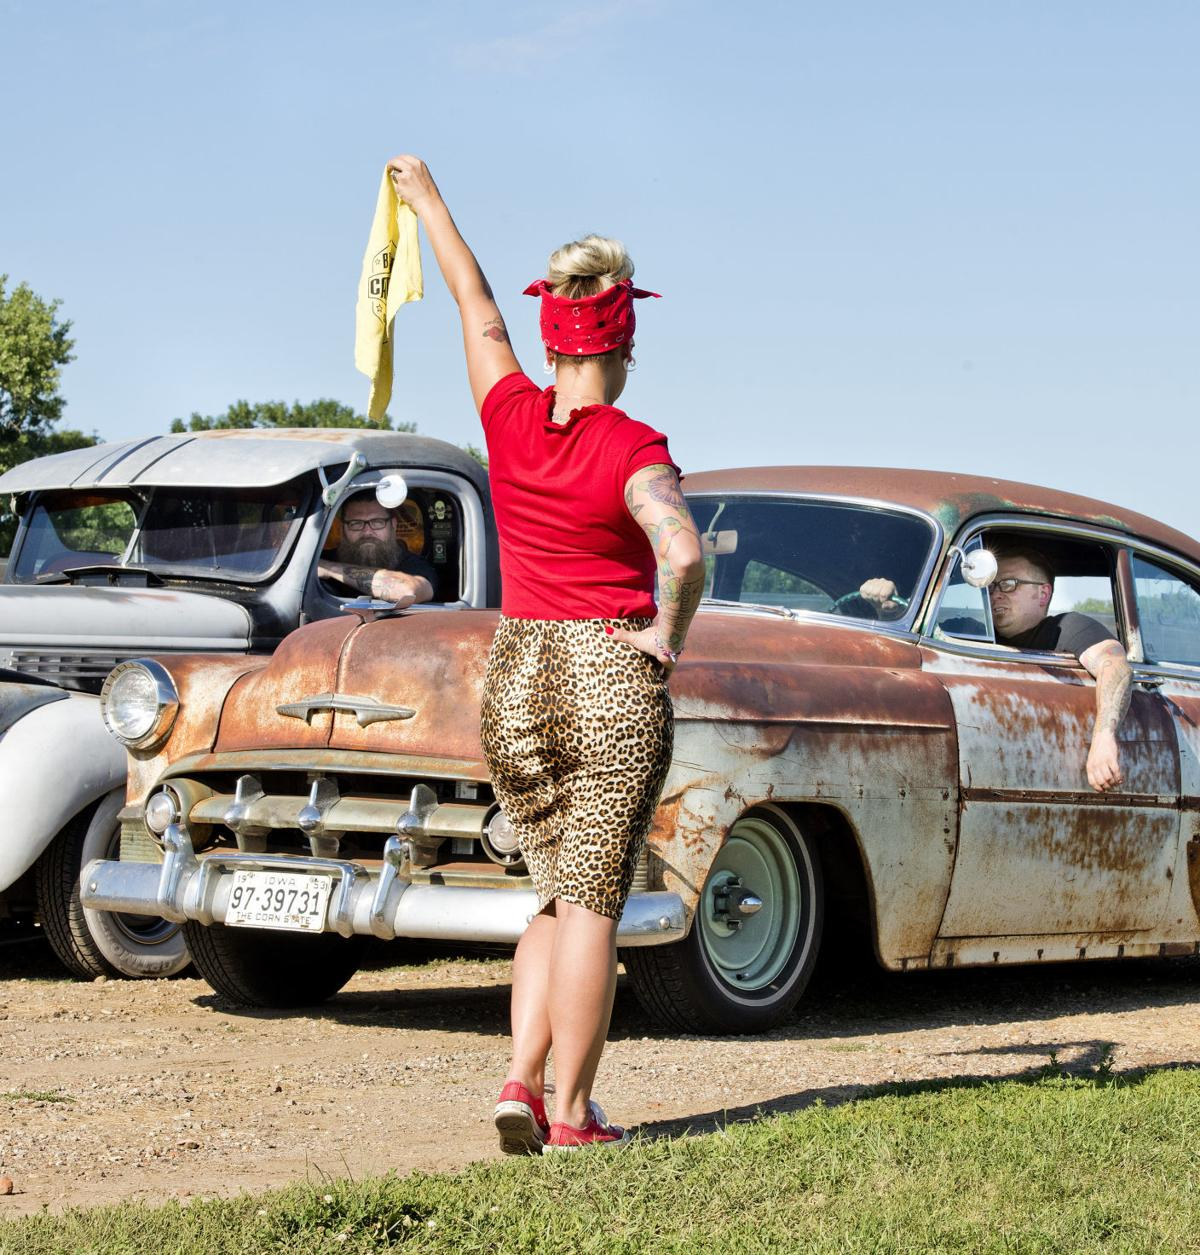 Rockabilly Car Show Brings Out The Greaser In Everyone Weekender - Rockabilly car show